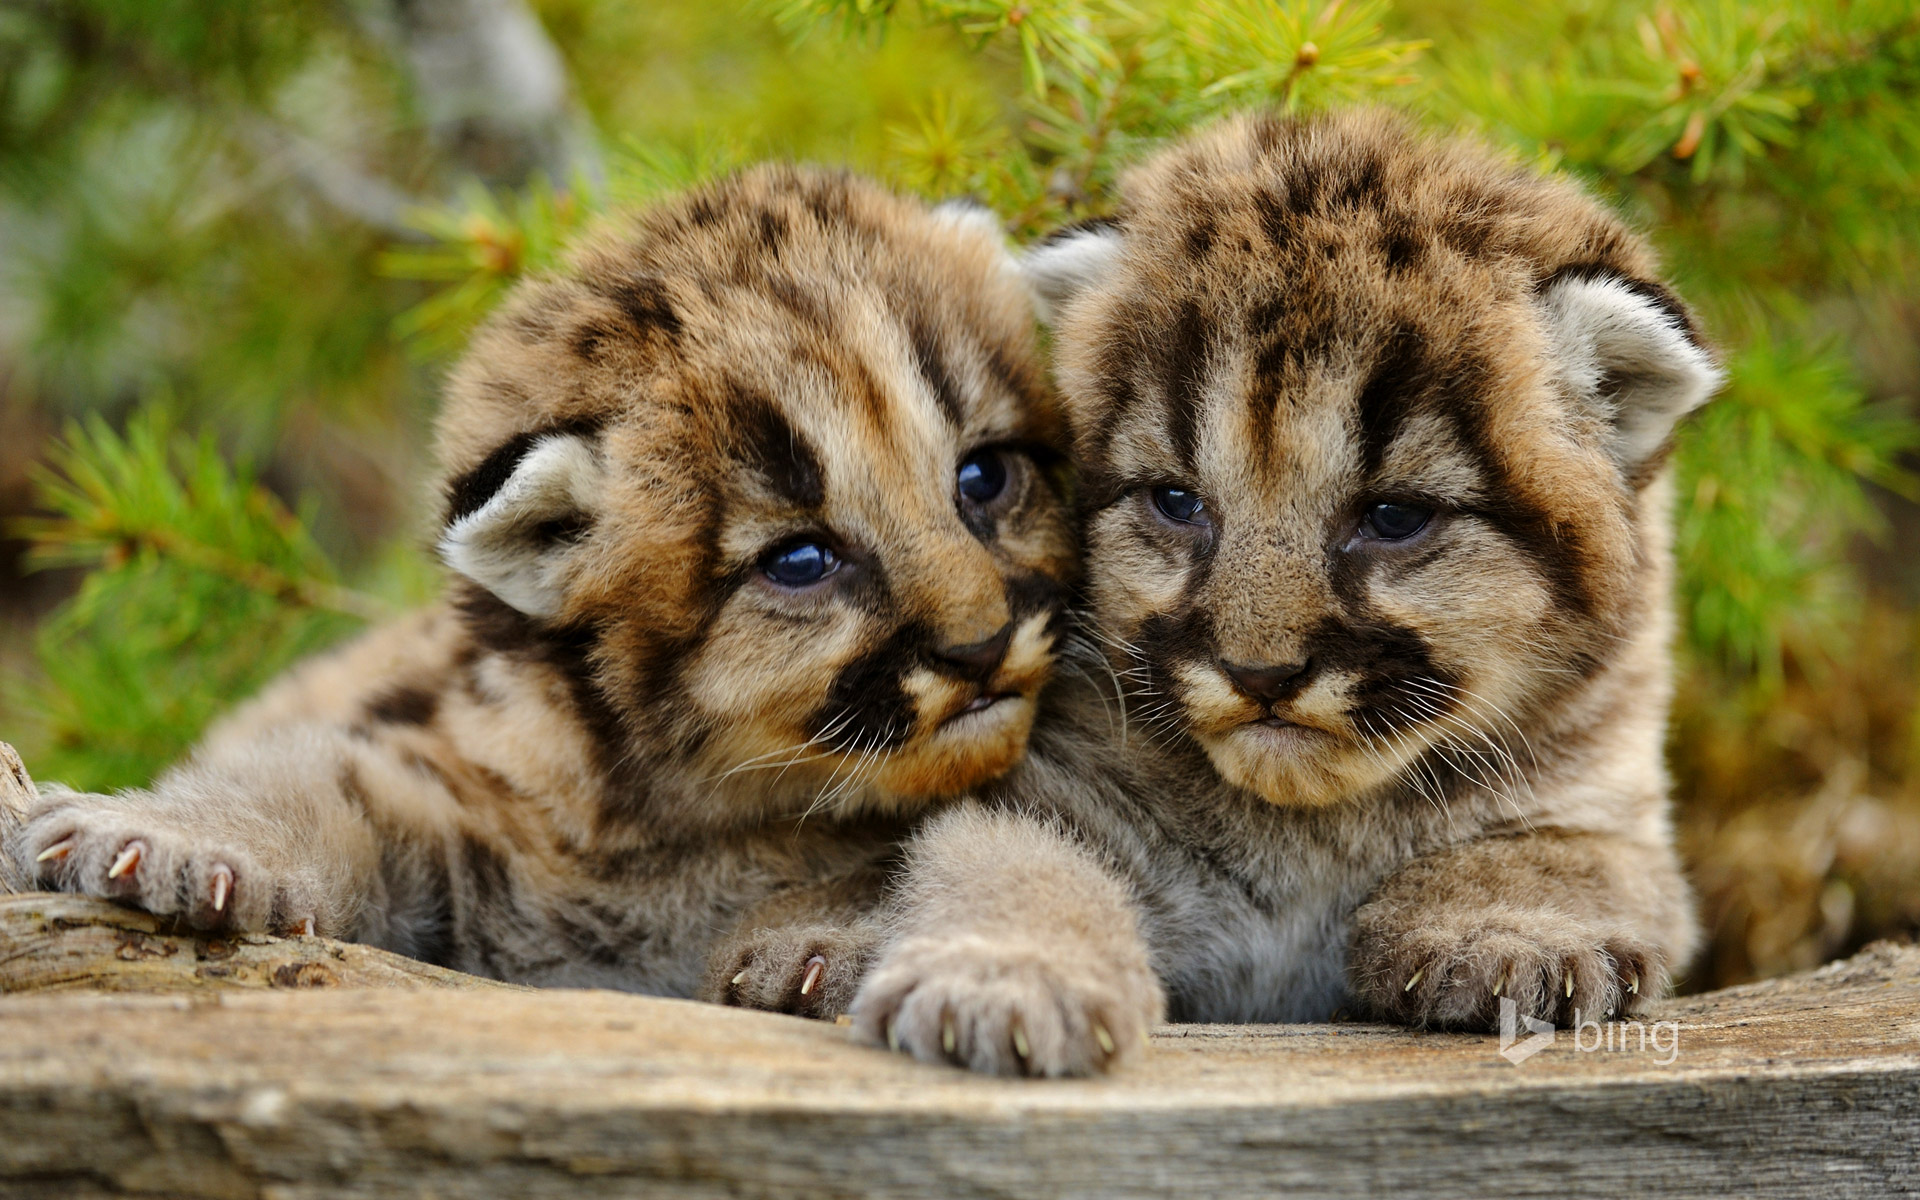 Mountain lion cubs near Bozeman, Montana